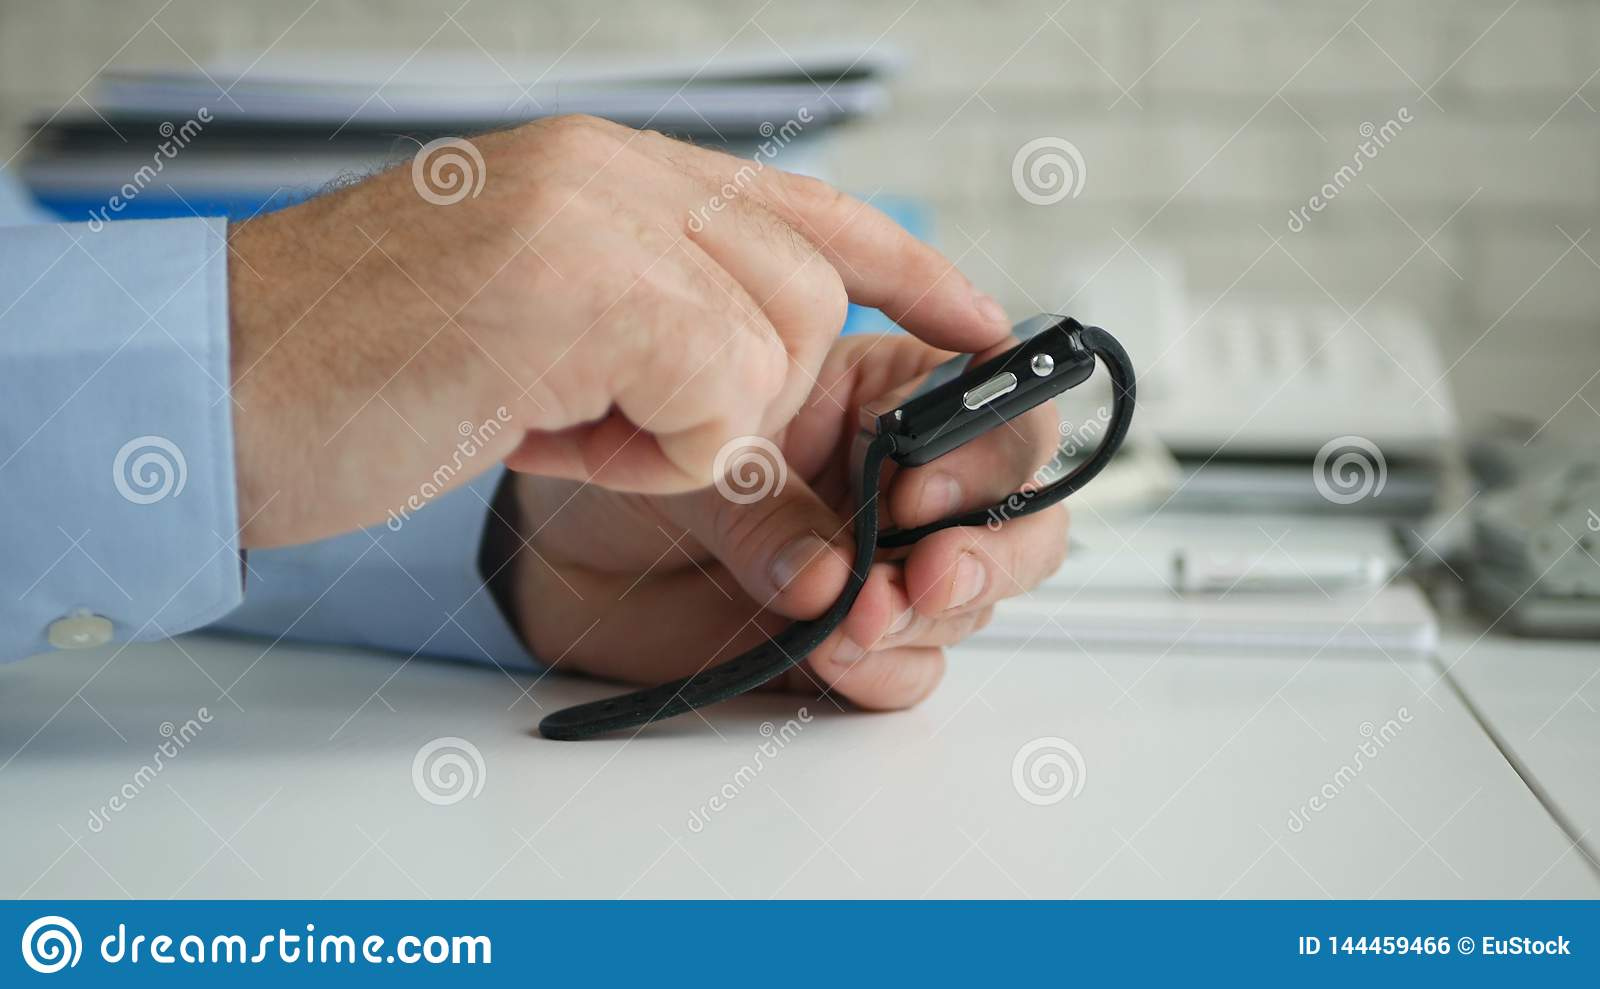 Businessman Image in Office Room Accessing Smartwatch Online Email Application